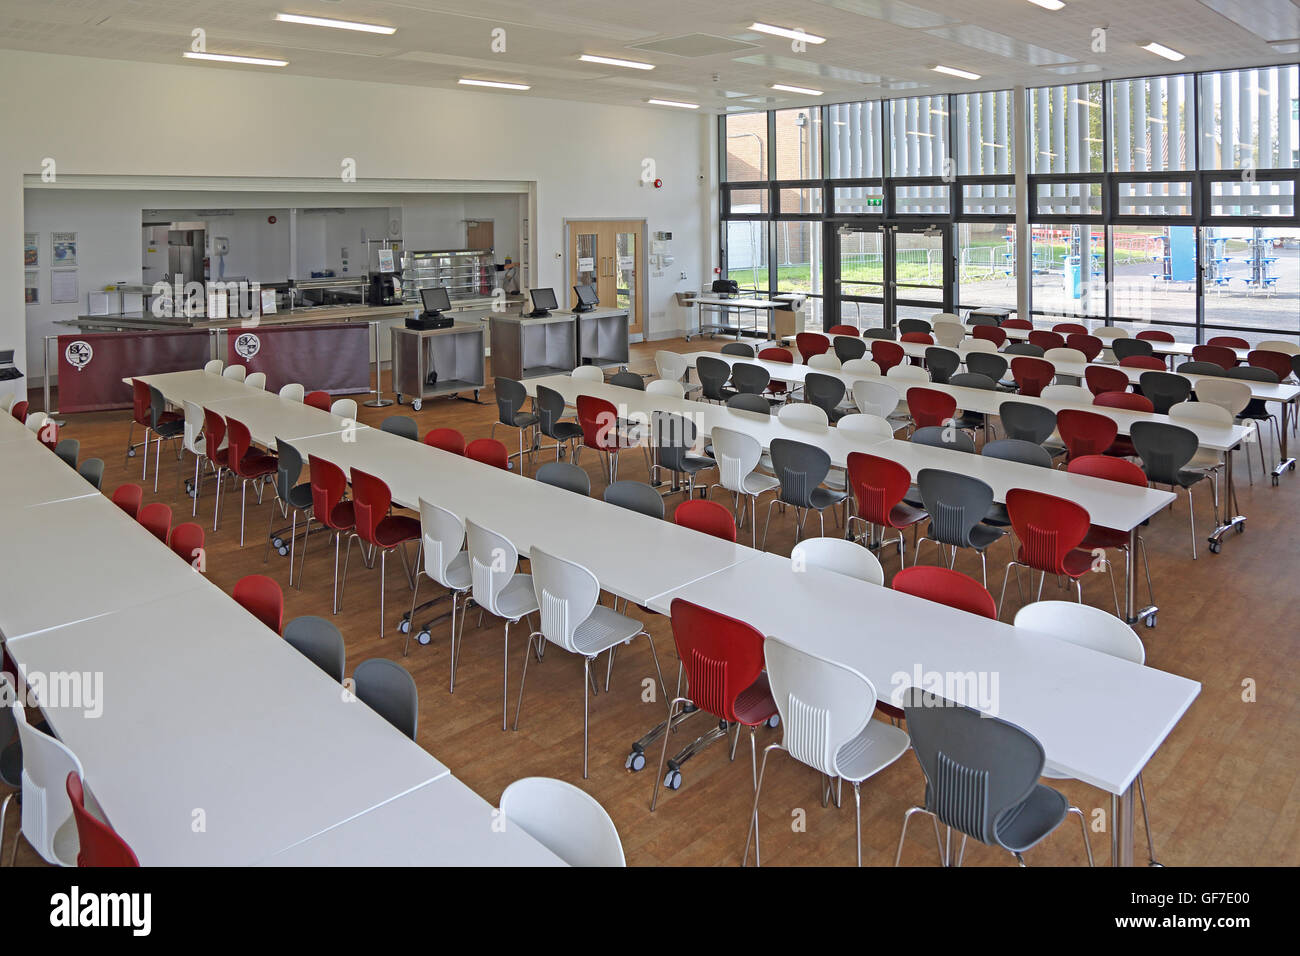 Interior view of a new school dining hall Shows tables and chairs